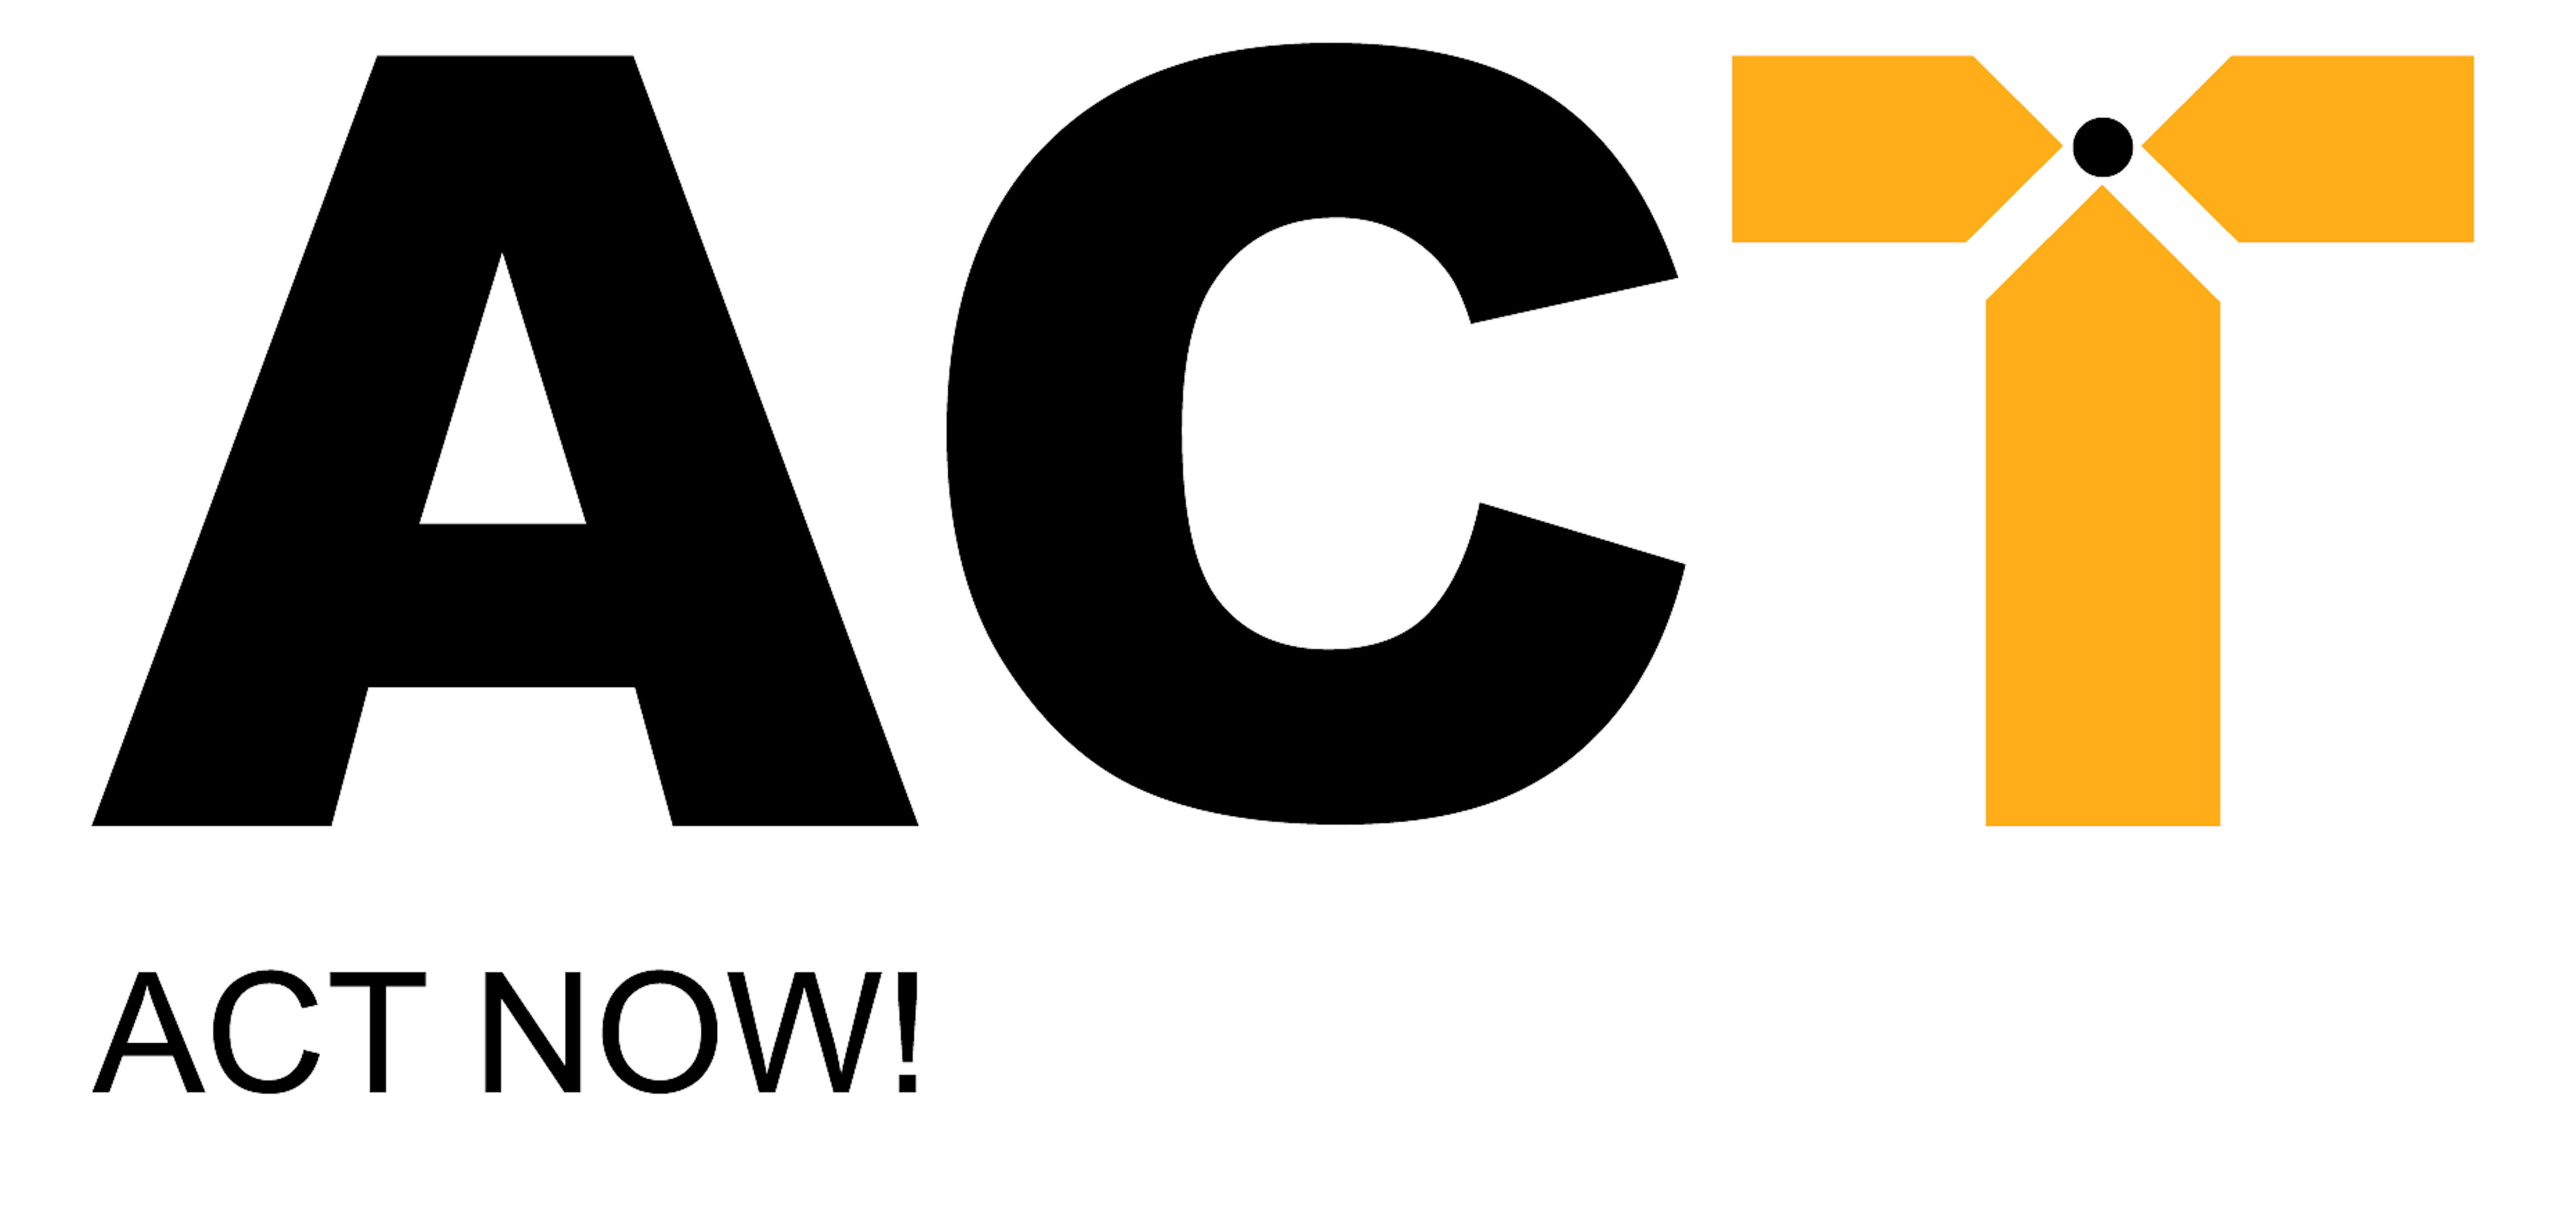 On a white background the letters of which the first two are black and read A C. The third is a yellow T, with its intersection of the vertical line with the horizontal line has produced three intersecting points all meeting a small black circle. Below the first letter are the words ACT NOW! in black.